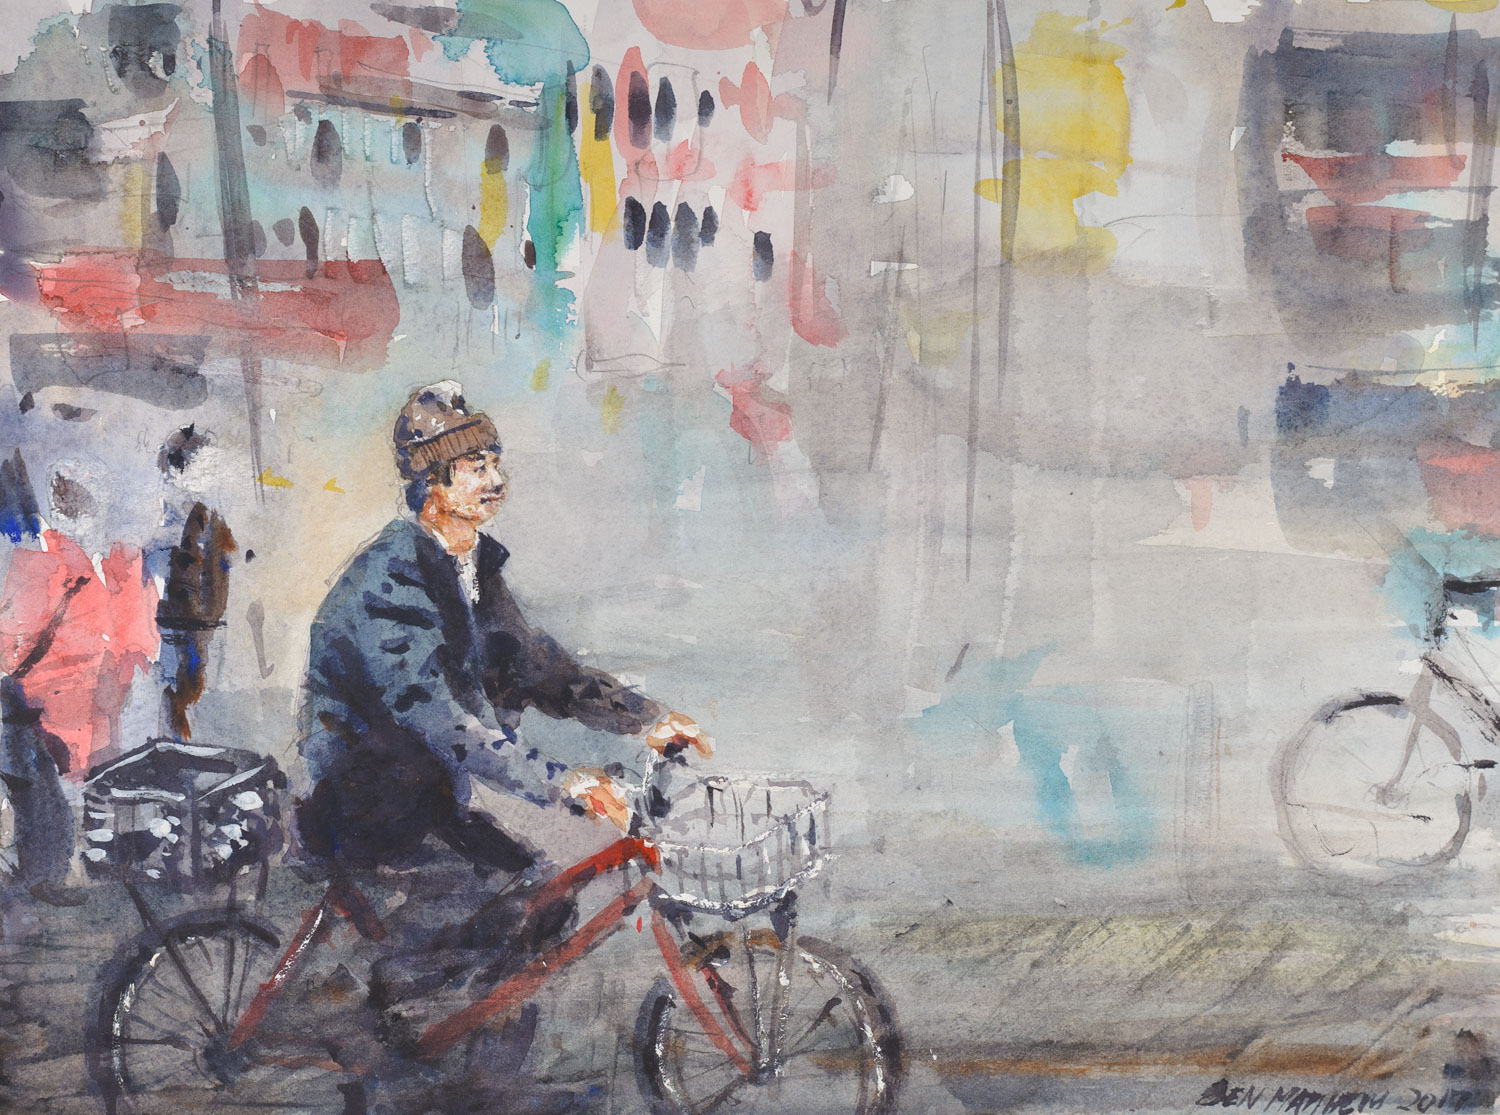 Man on a Bicycle, Chinatown, NYC